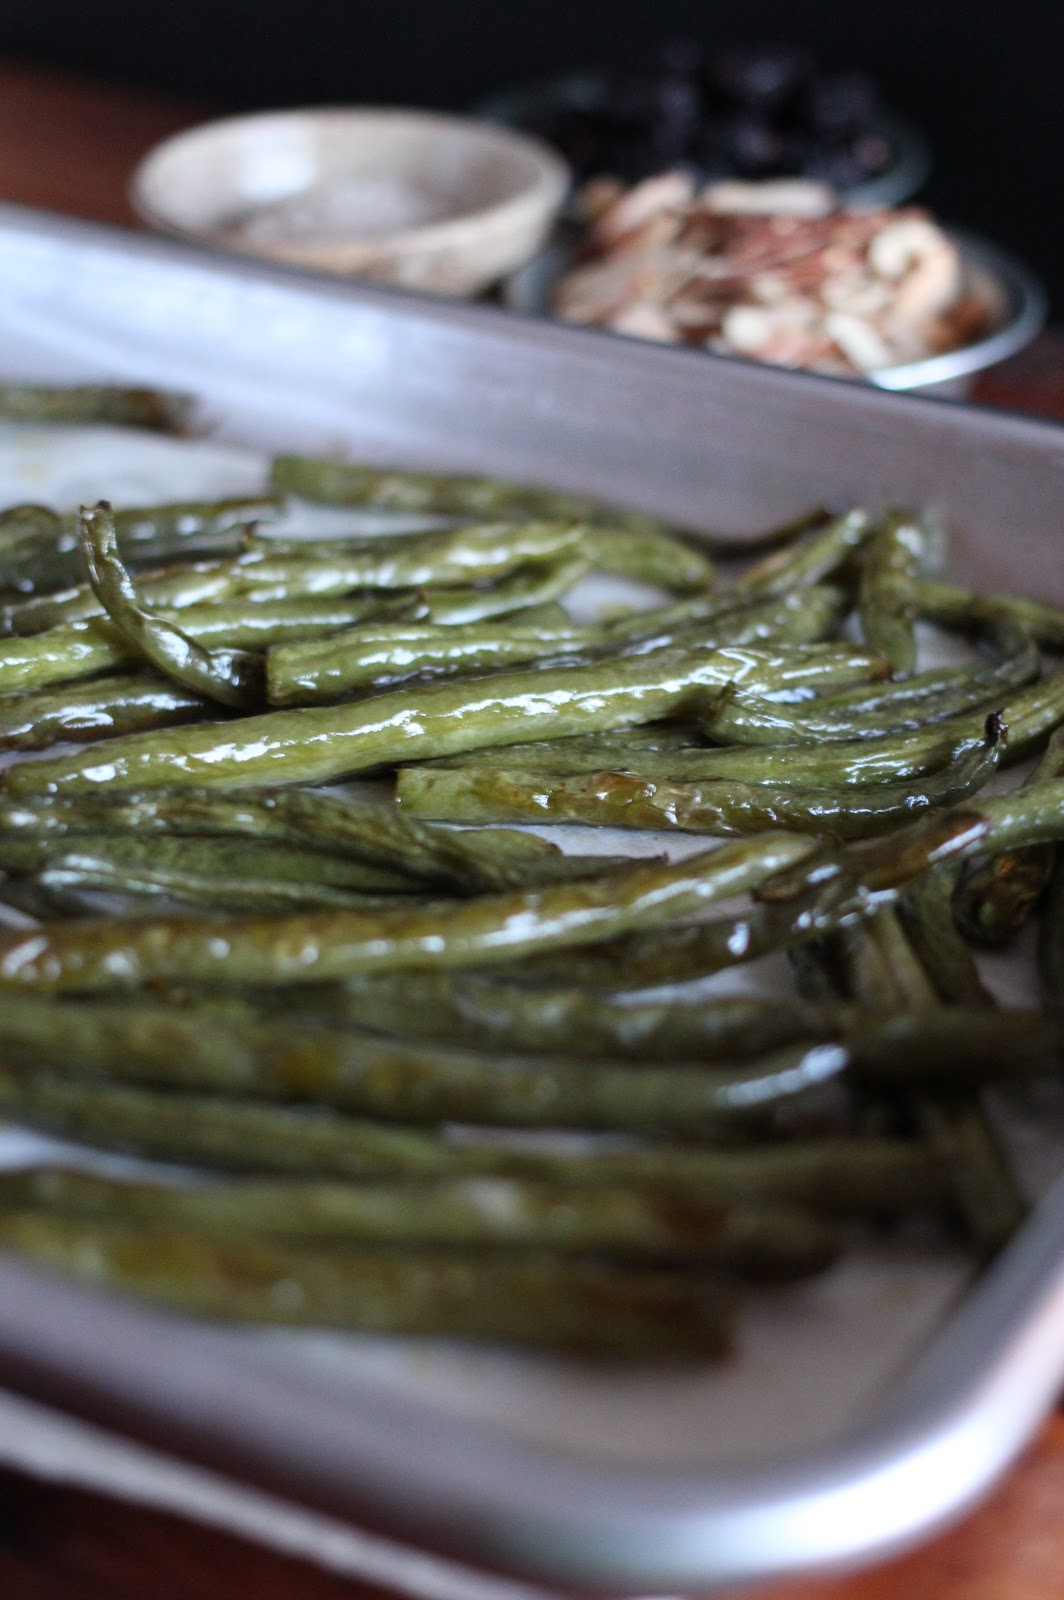 Arctic Garden Studio: Roasted Green Beans